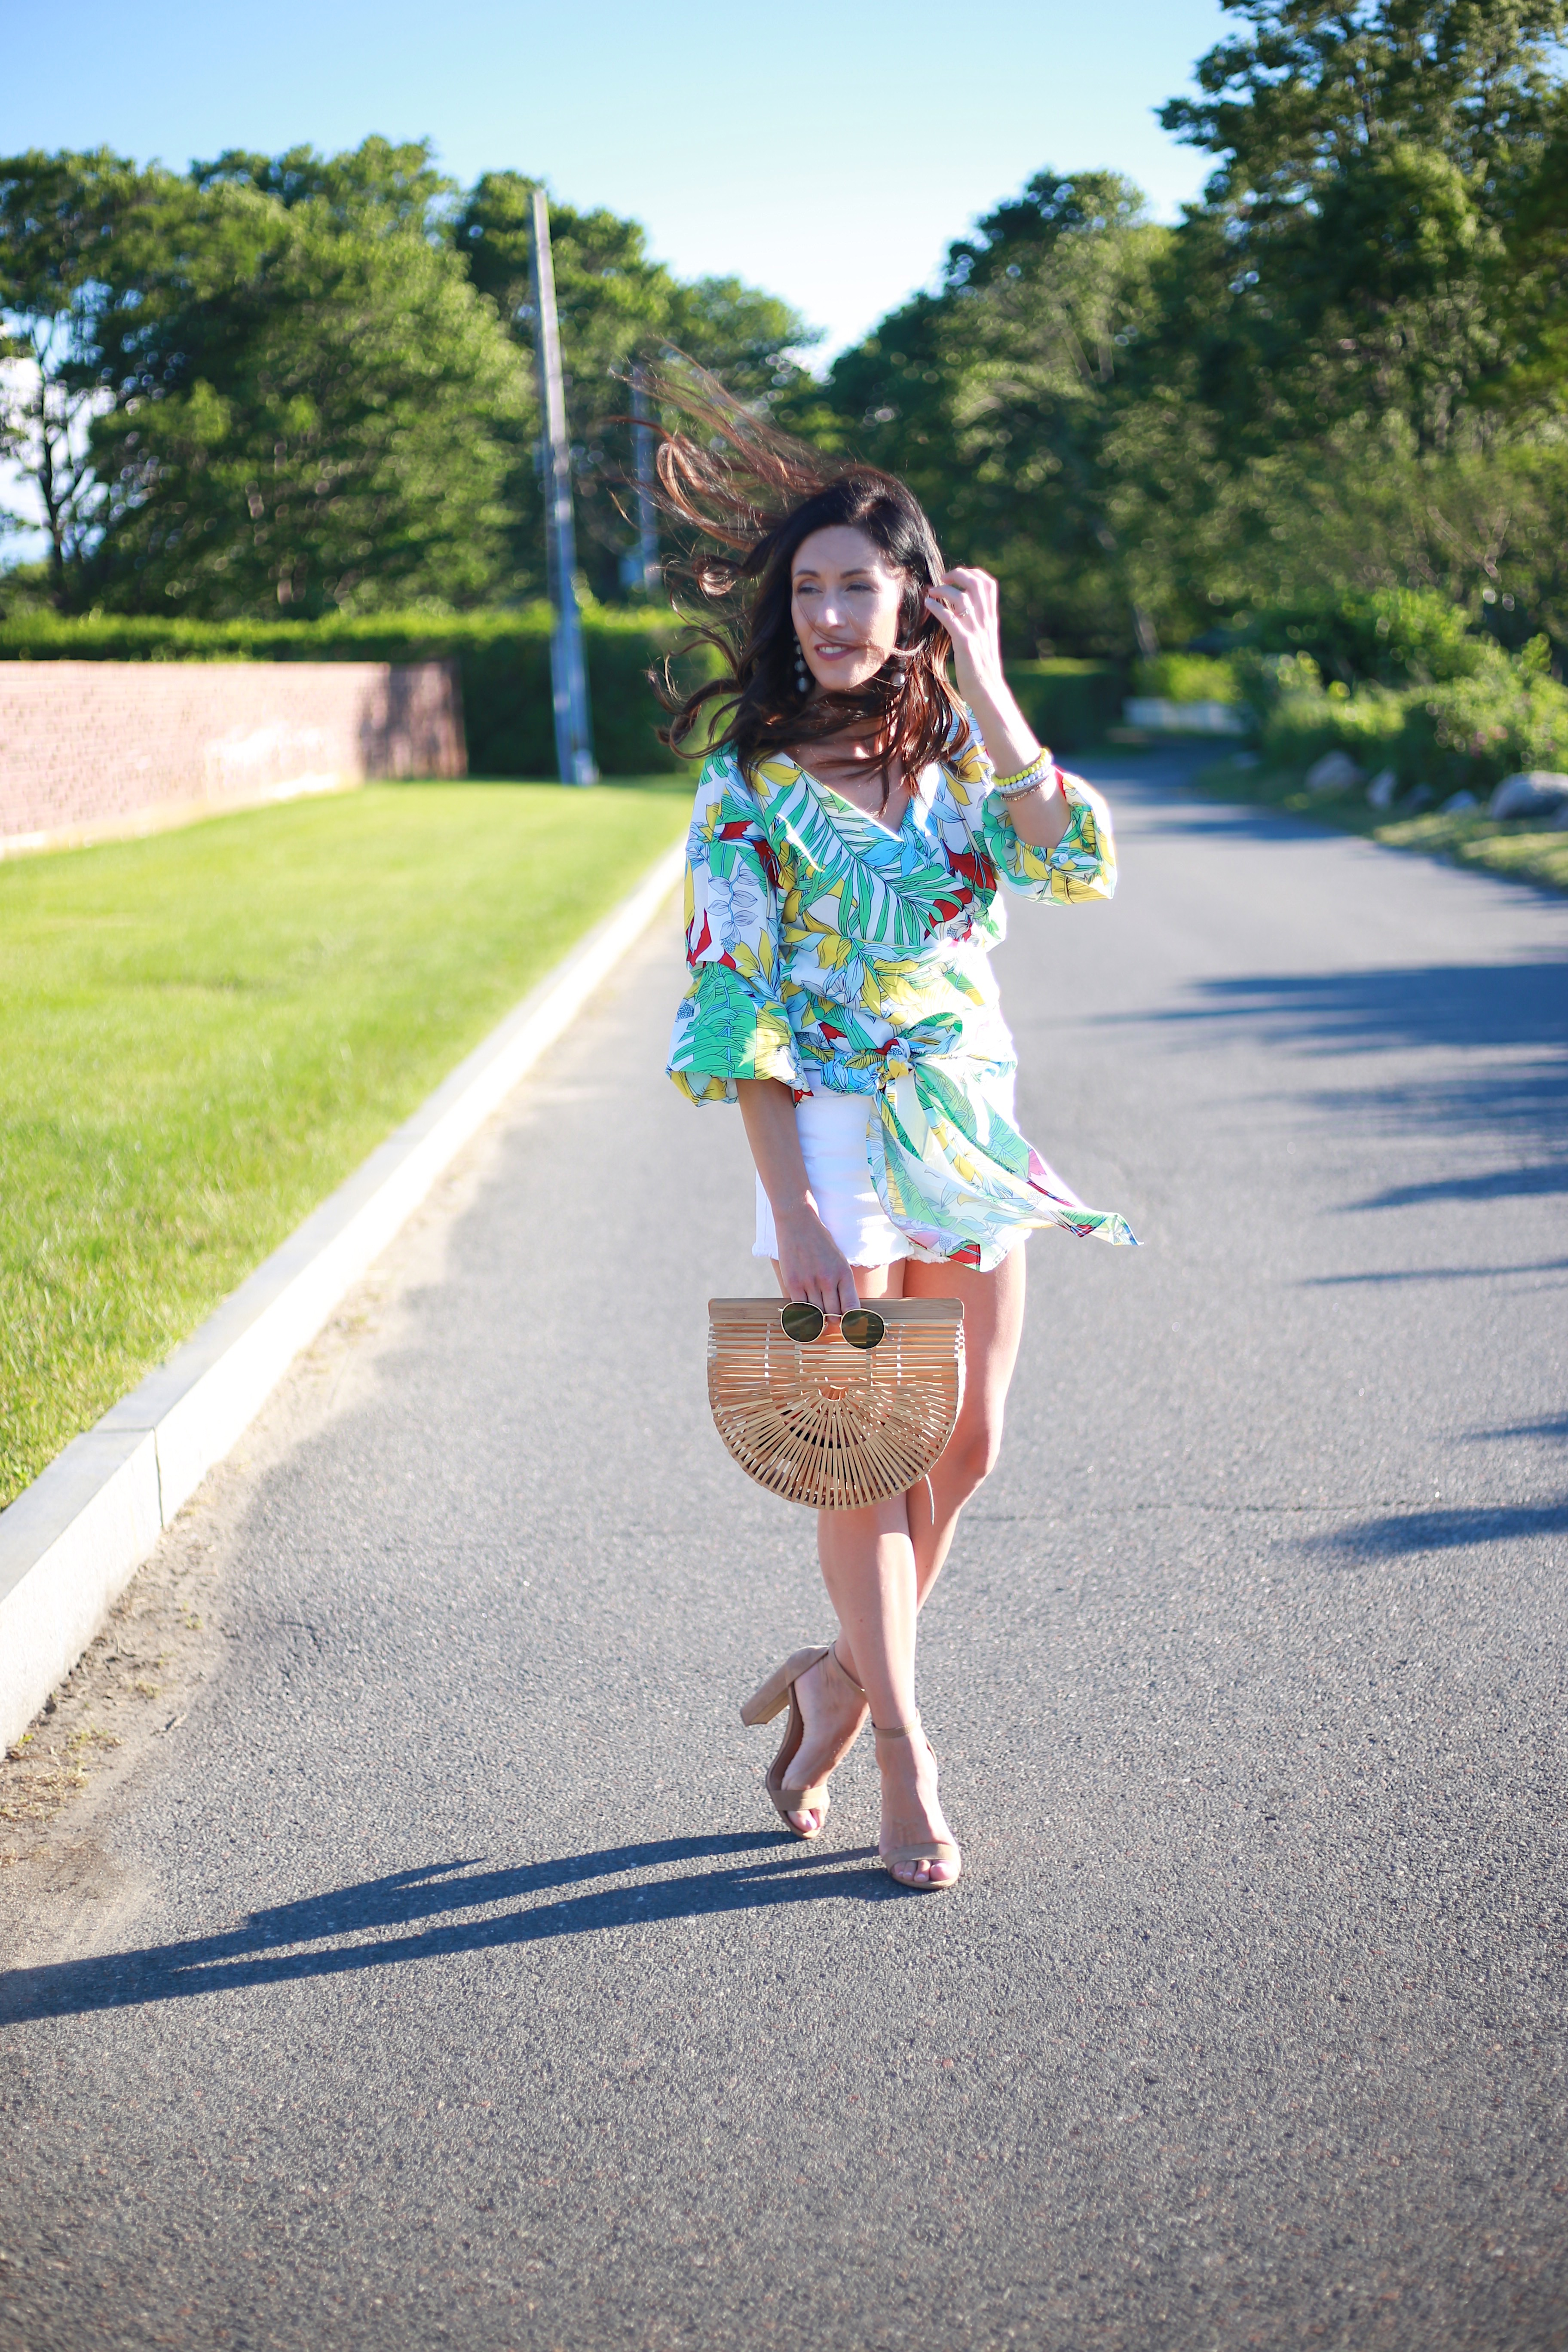 summer fashion. My 10 tips for the Nordstrom Anniversary sale